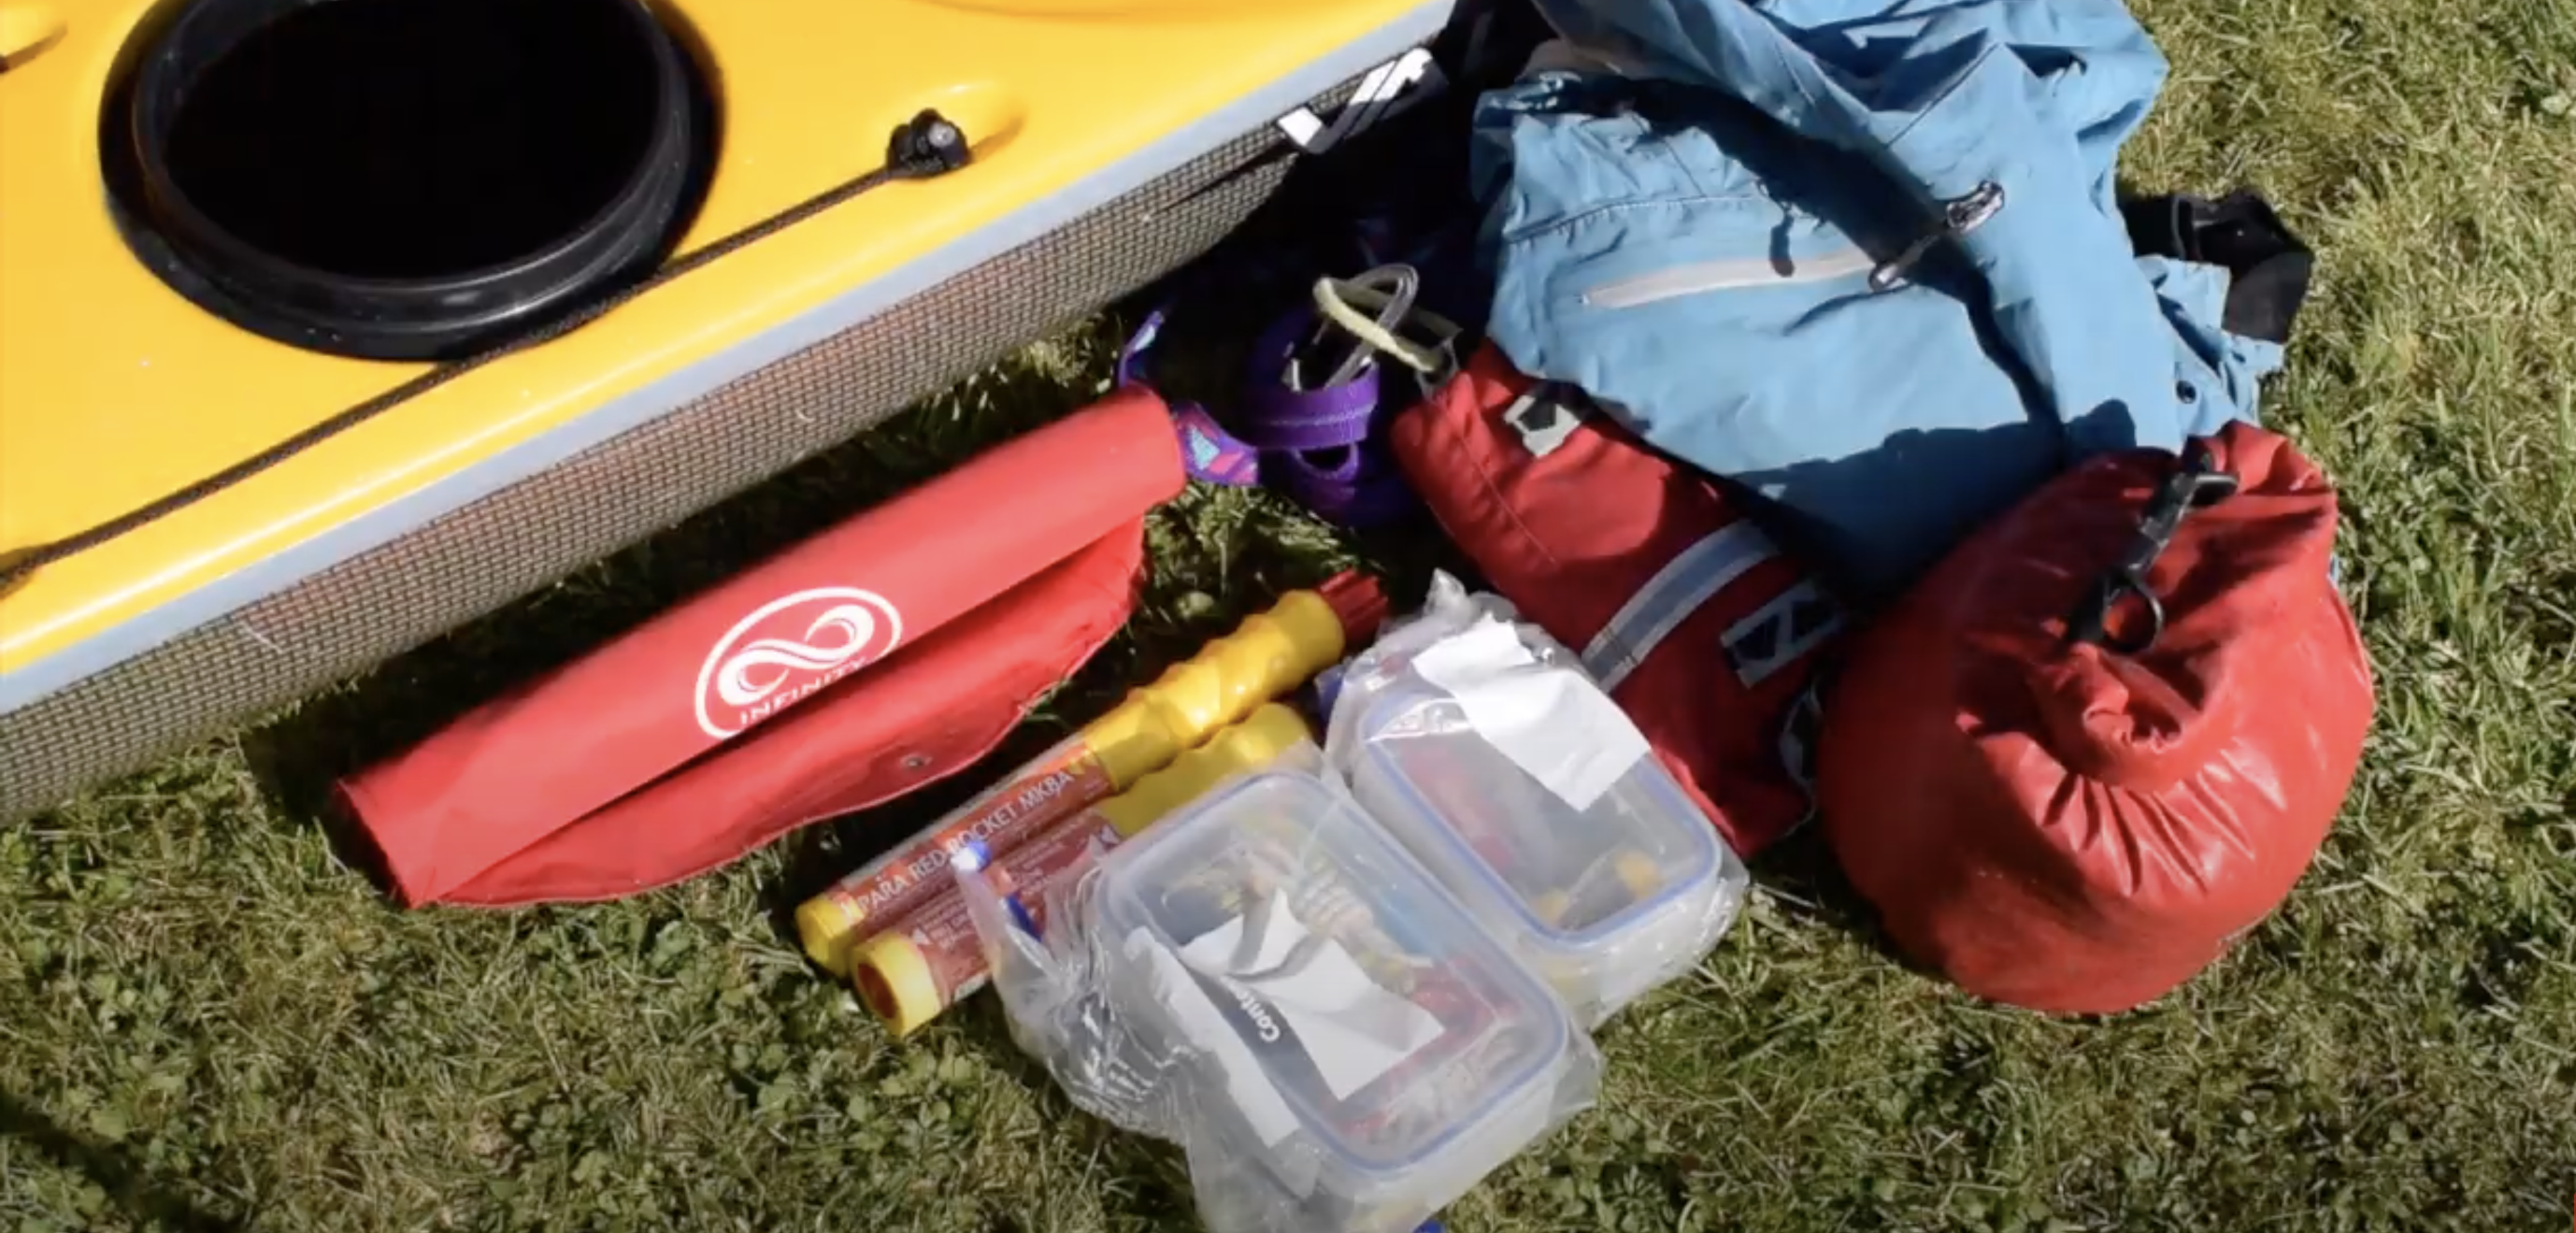 Kayak Safety Kit - Day Hatch